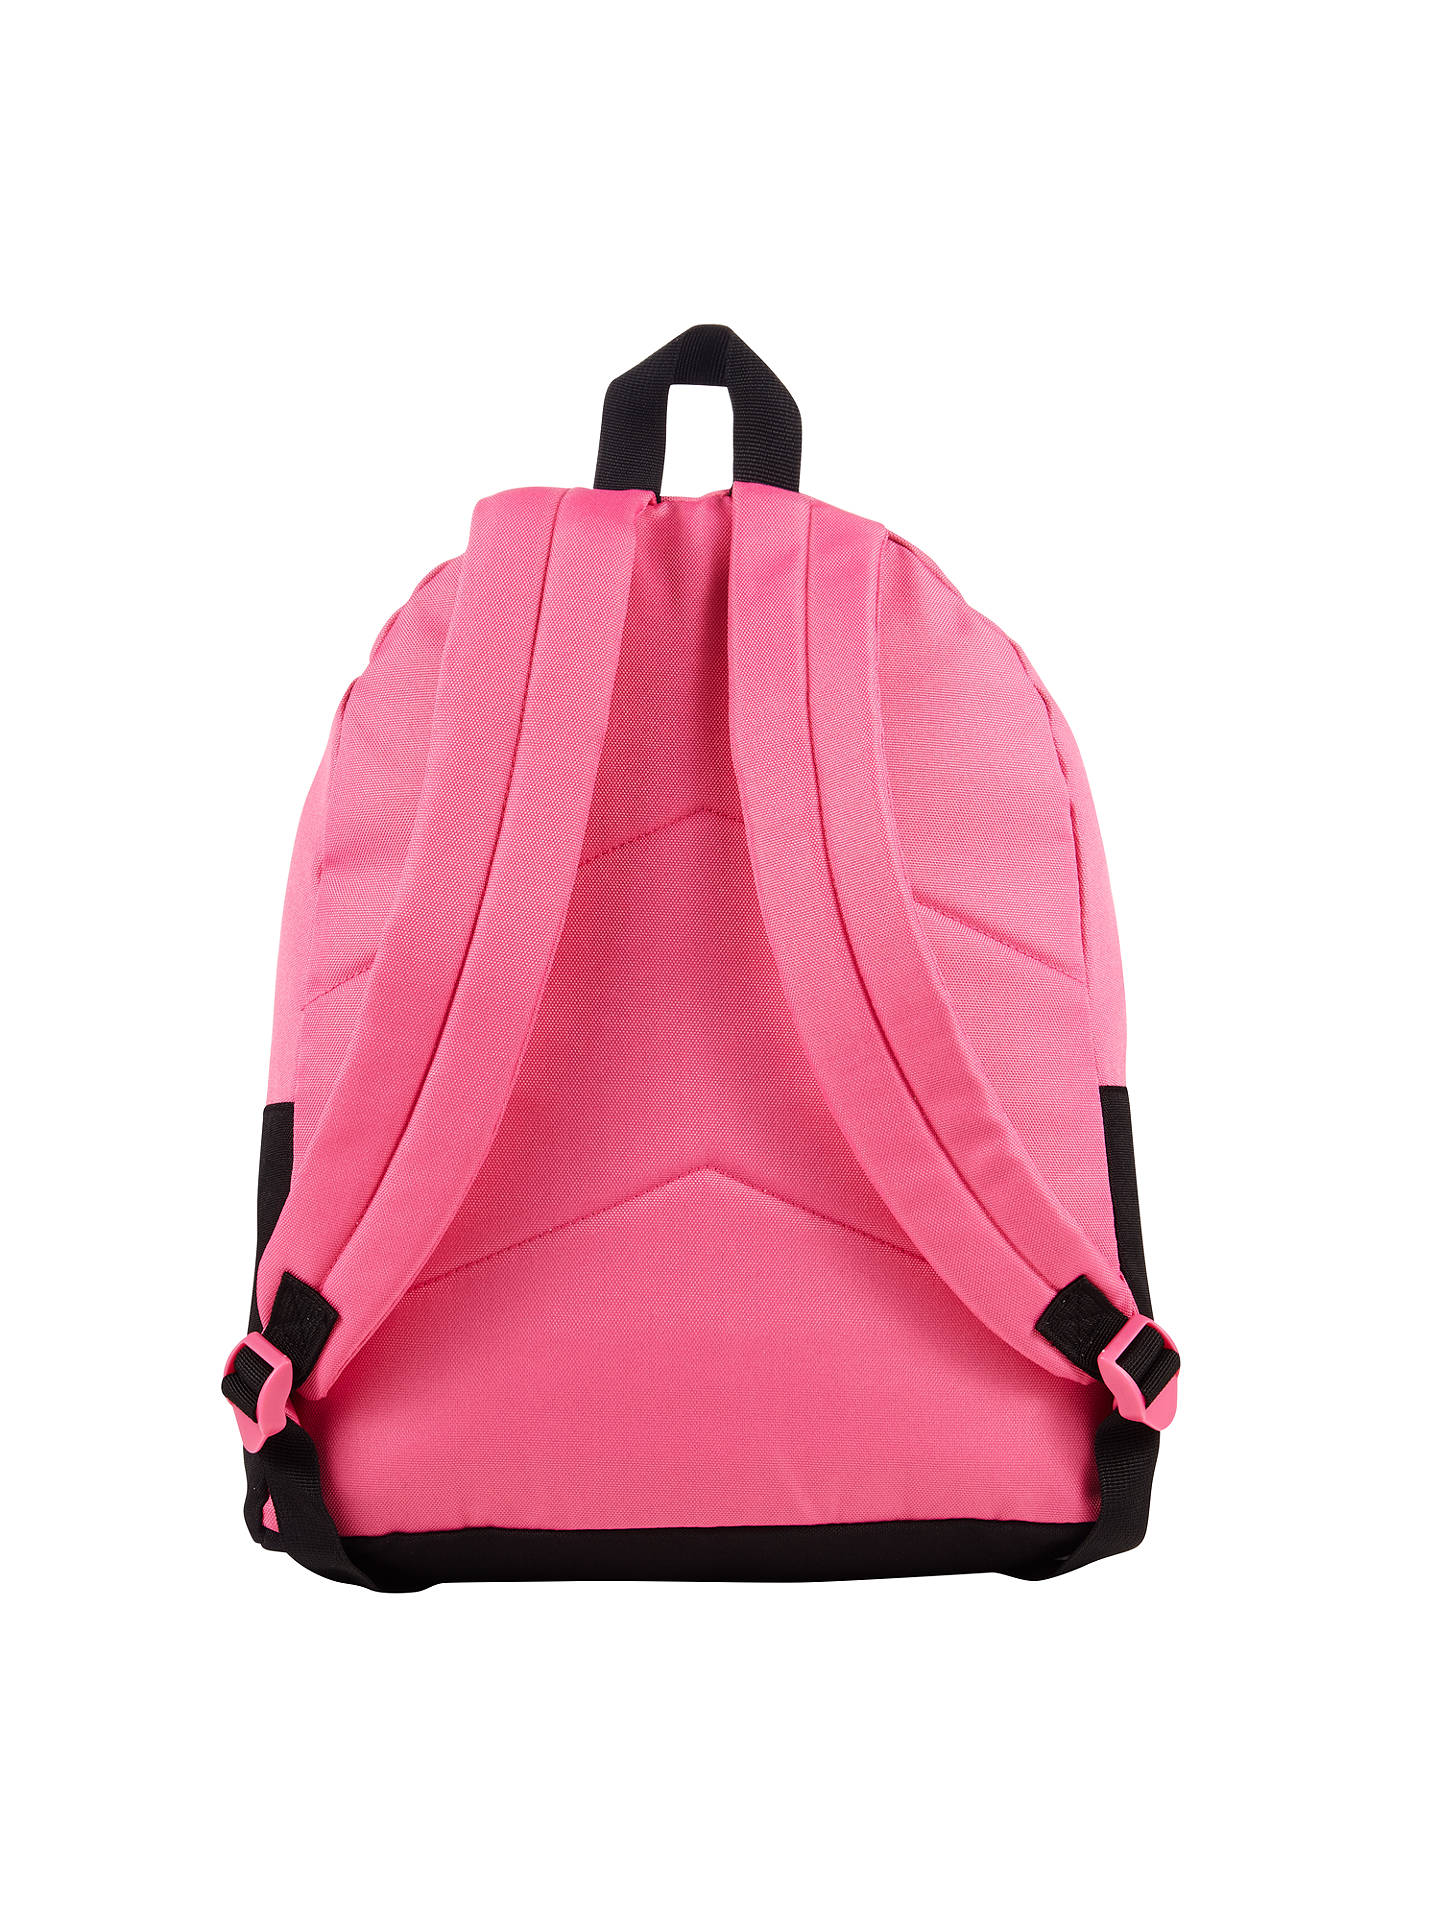 Converse Childrens Colour Block Backpack Pink Black At John Lewis Buyconverse One Size Online Johnlewis